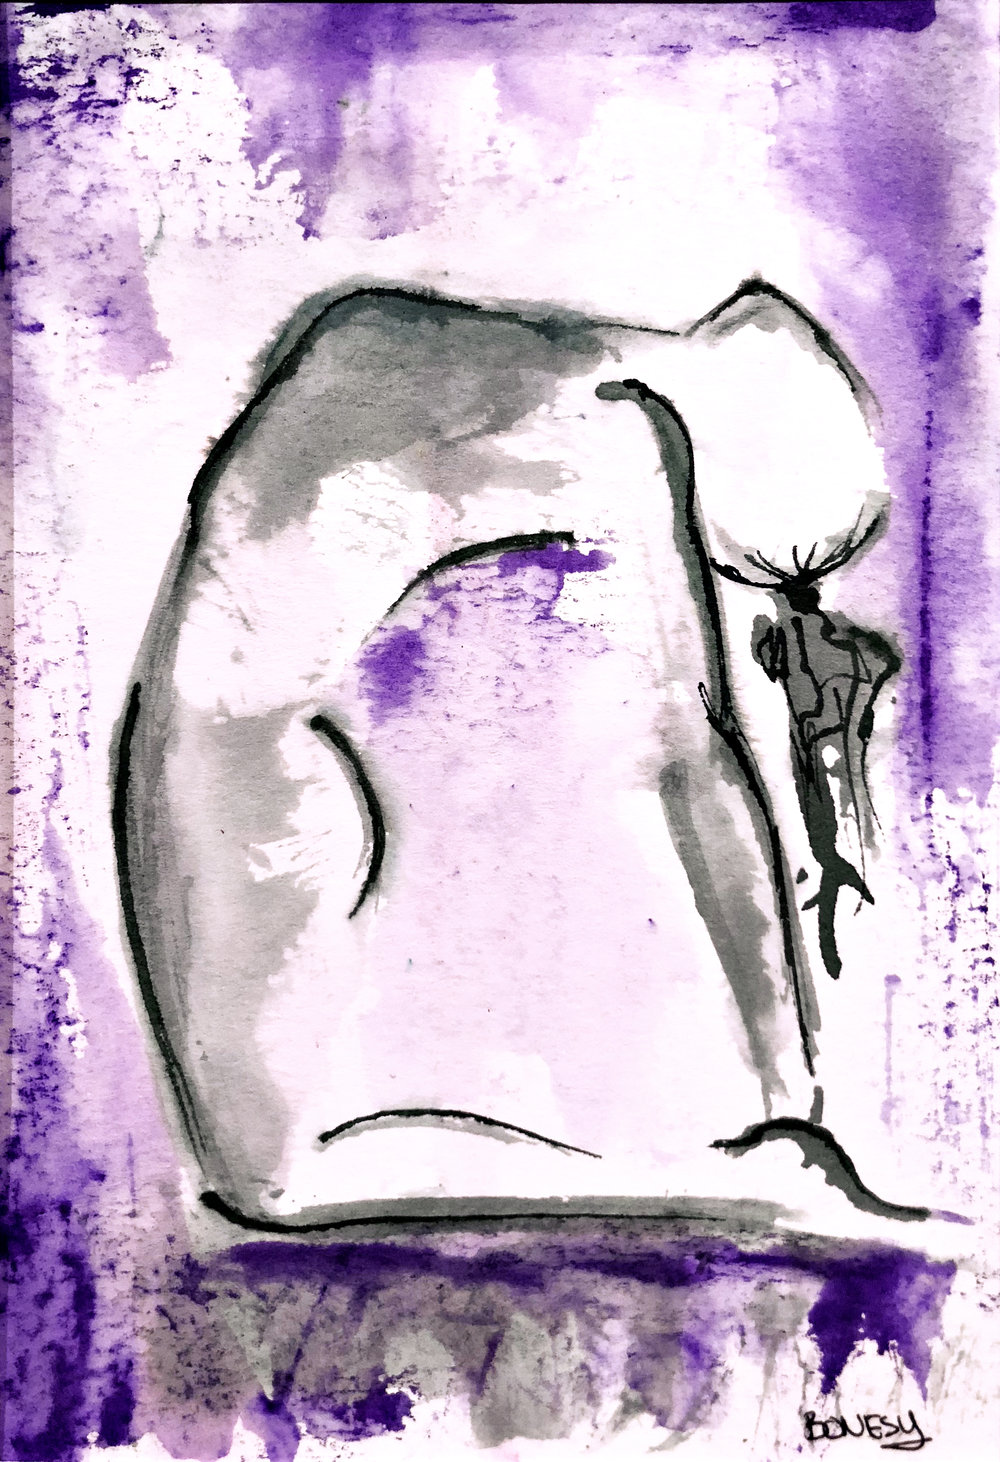 Watercolor on paper, painted with palette knives, yoga pose ustrasana, or camel pose.